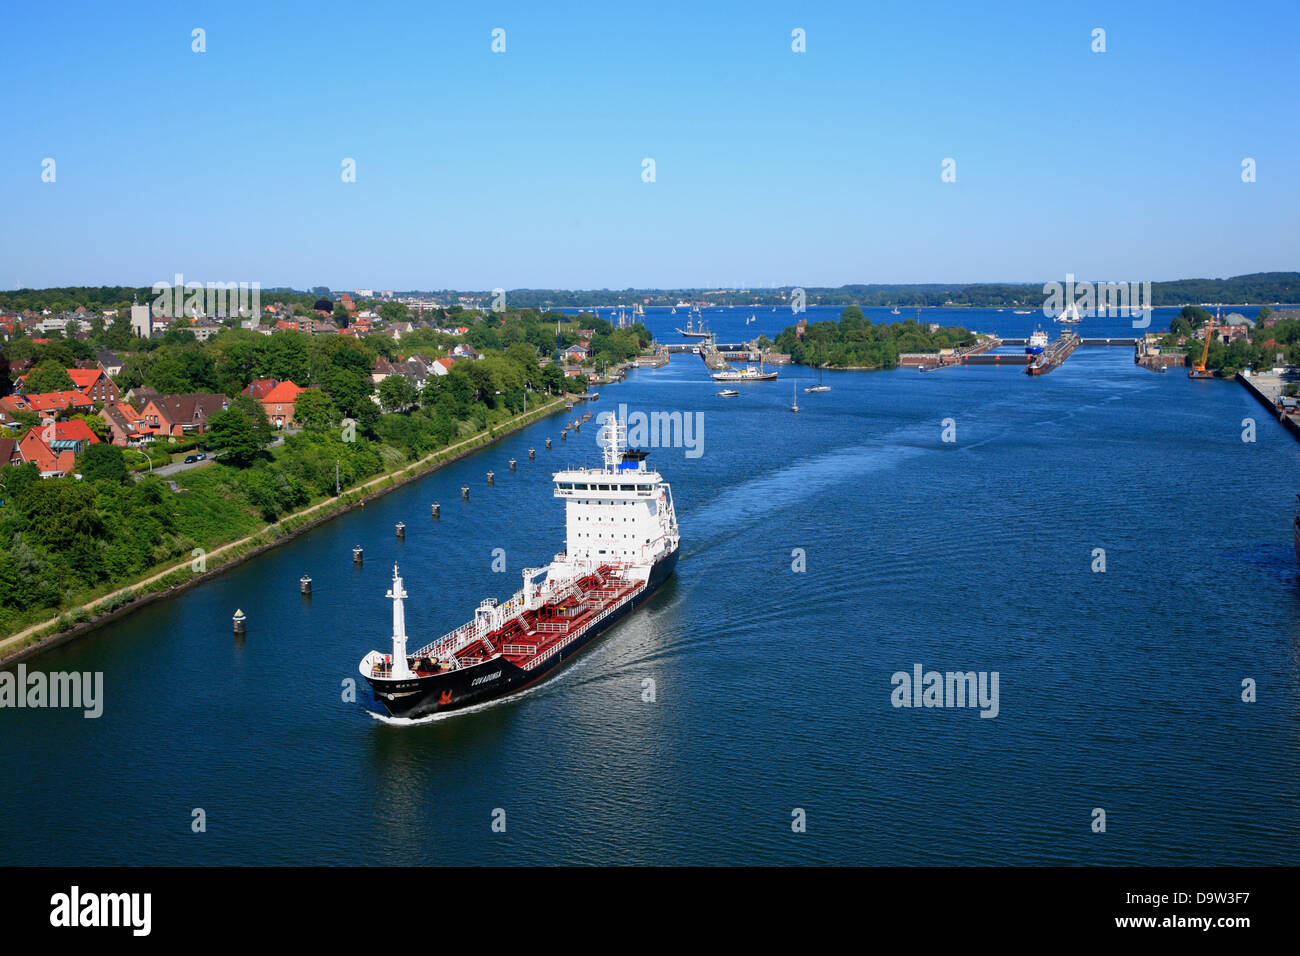 Kiel Canal at Kiel-Holtenau Lock, Kiel, Schleswig-Holstein, Germany, Europe - Stock Image